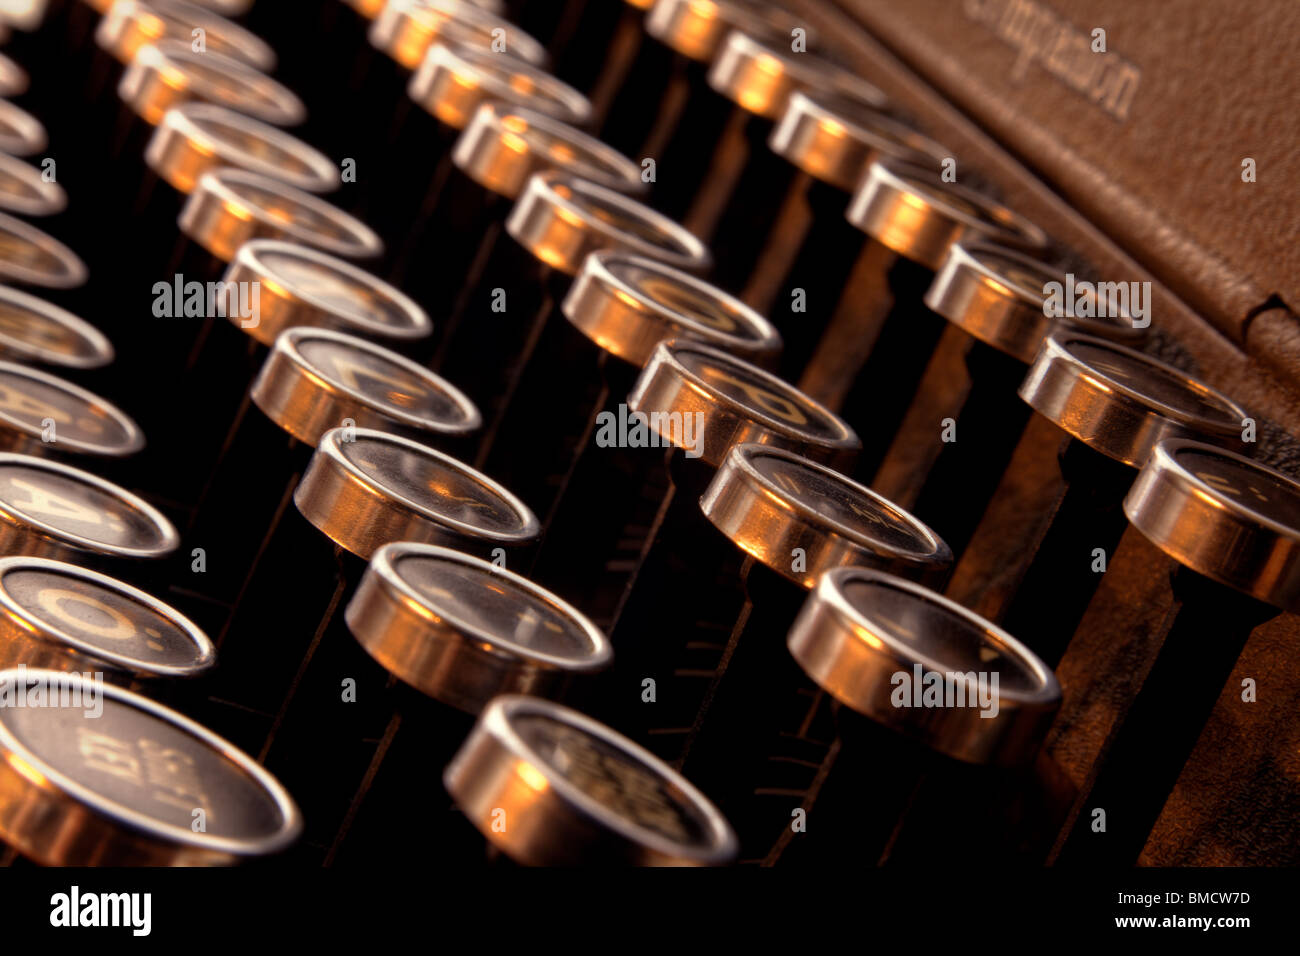 Typewriter keys - Stock Image